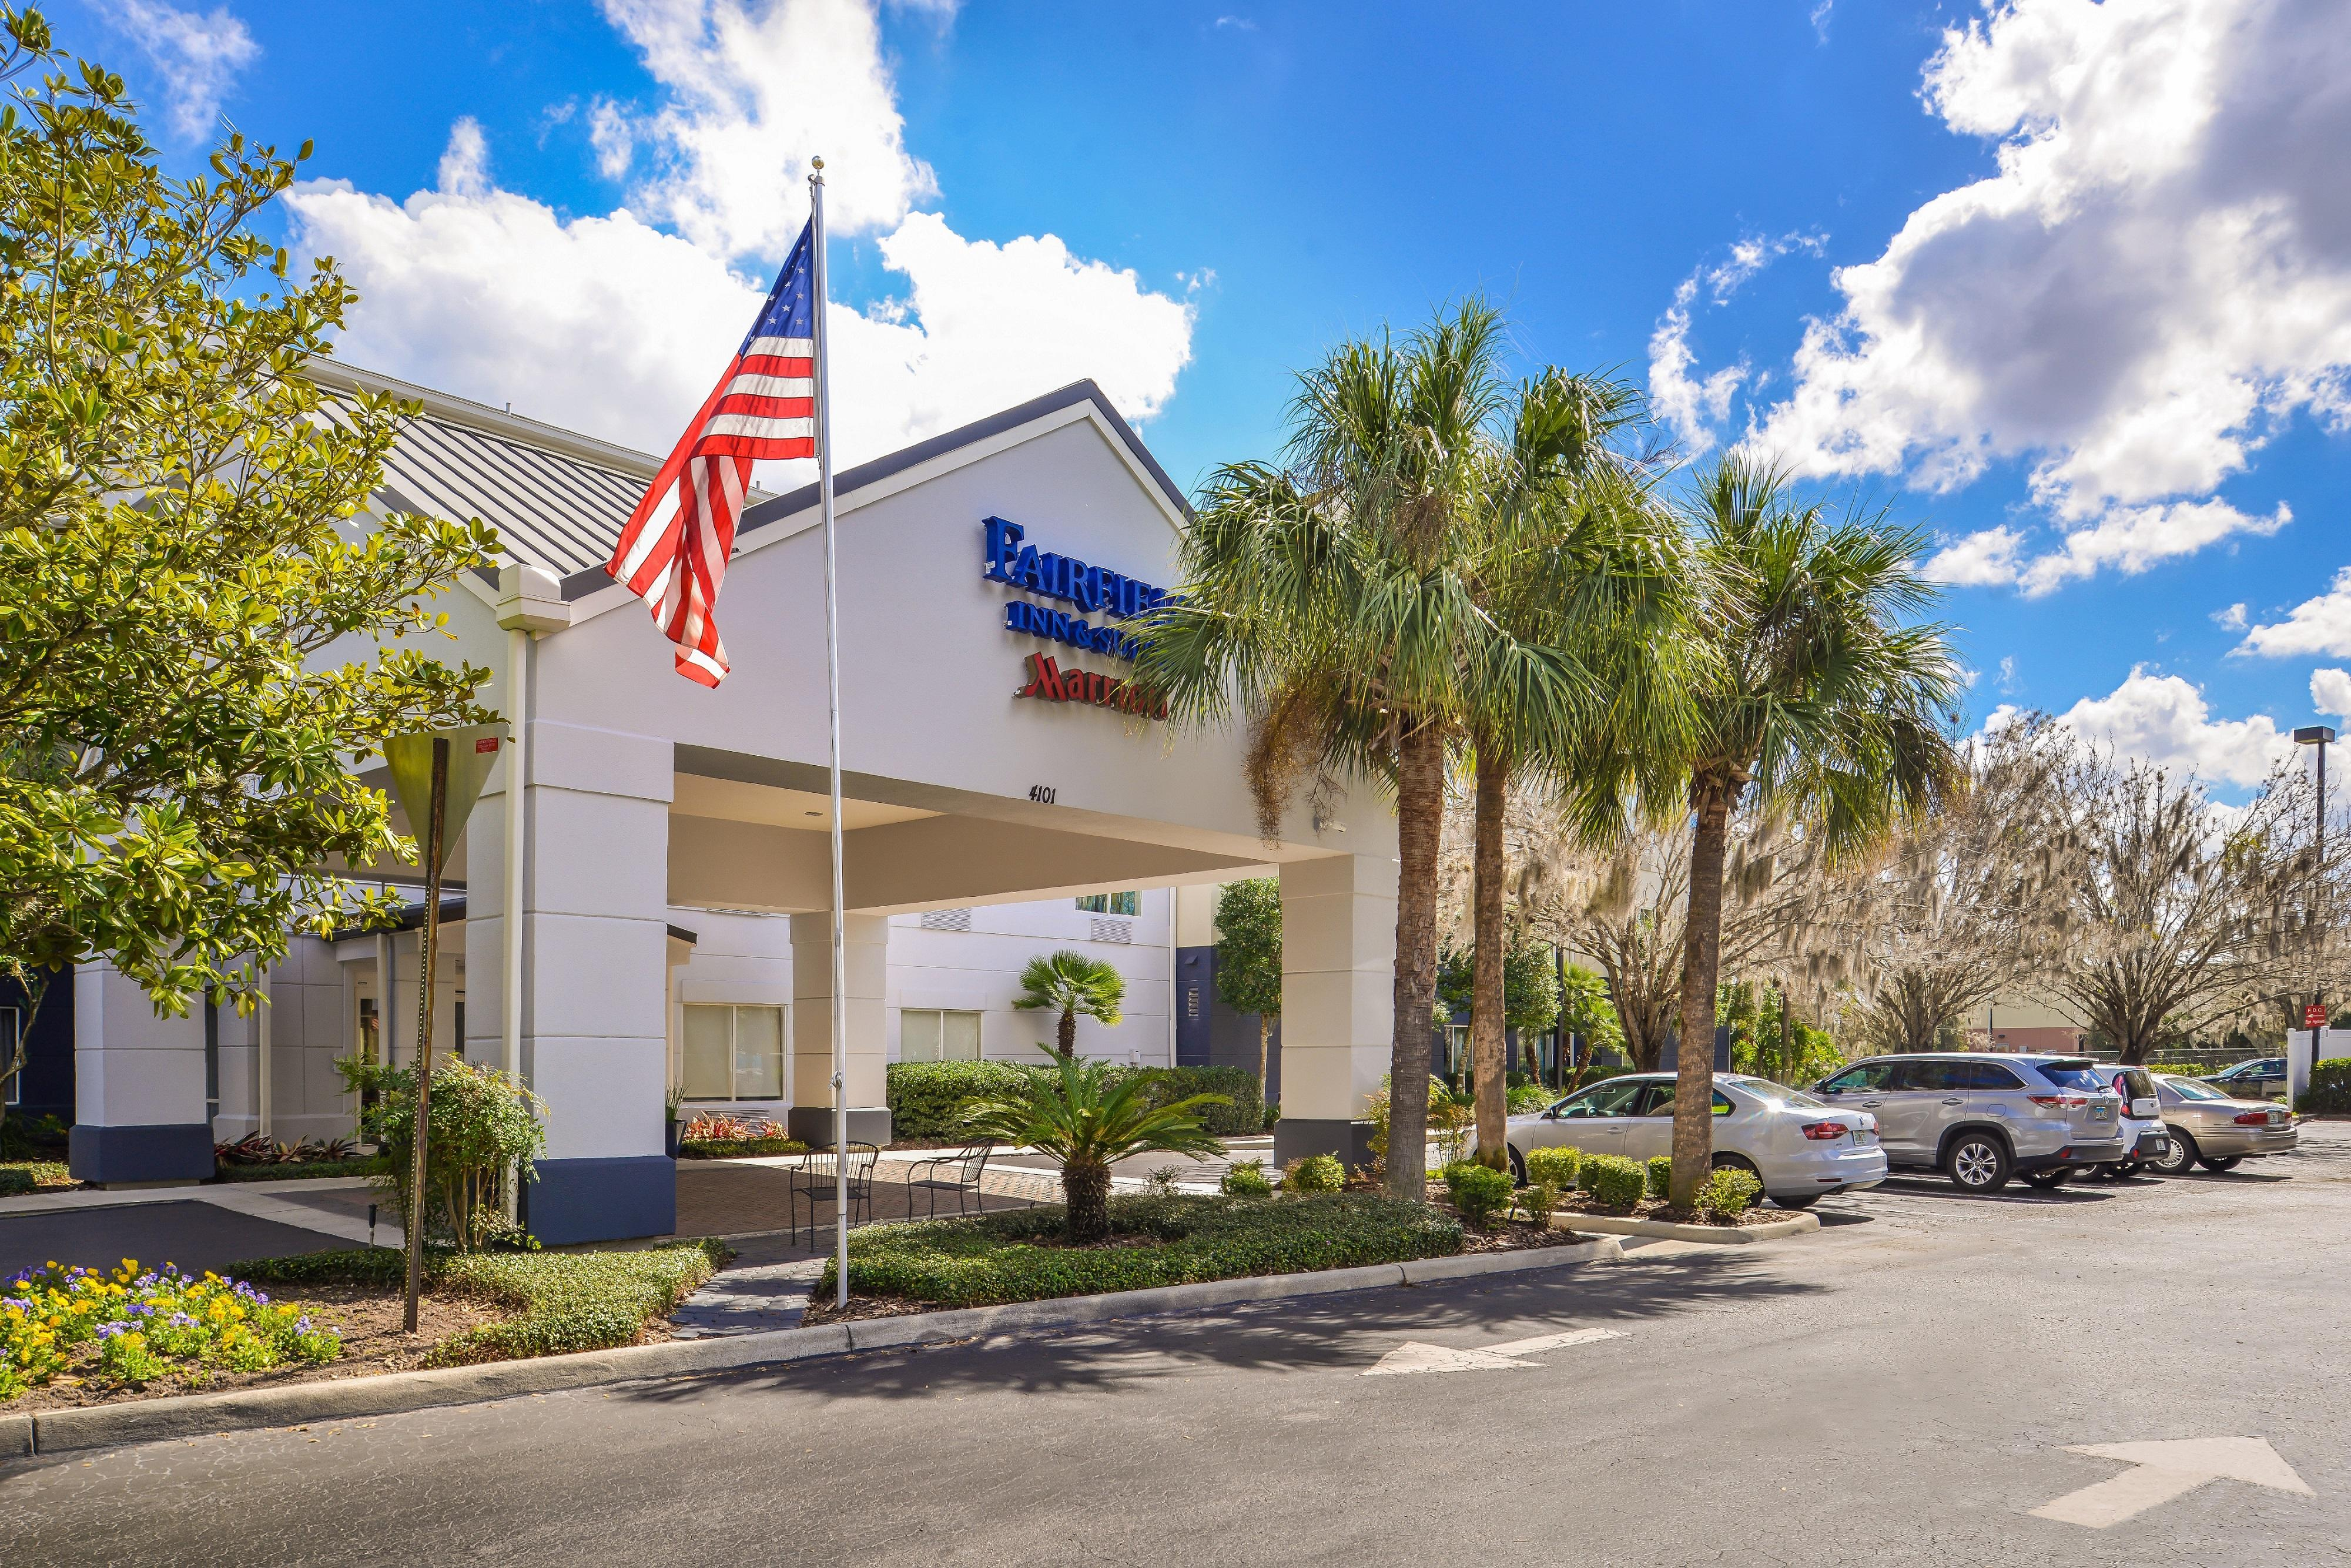 Fairfield Inn & Suites by Marriott Ocala image 0